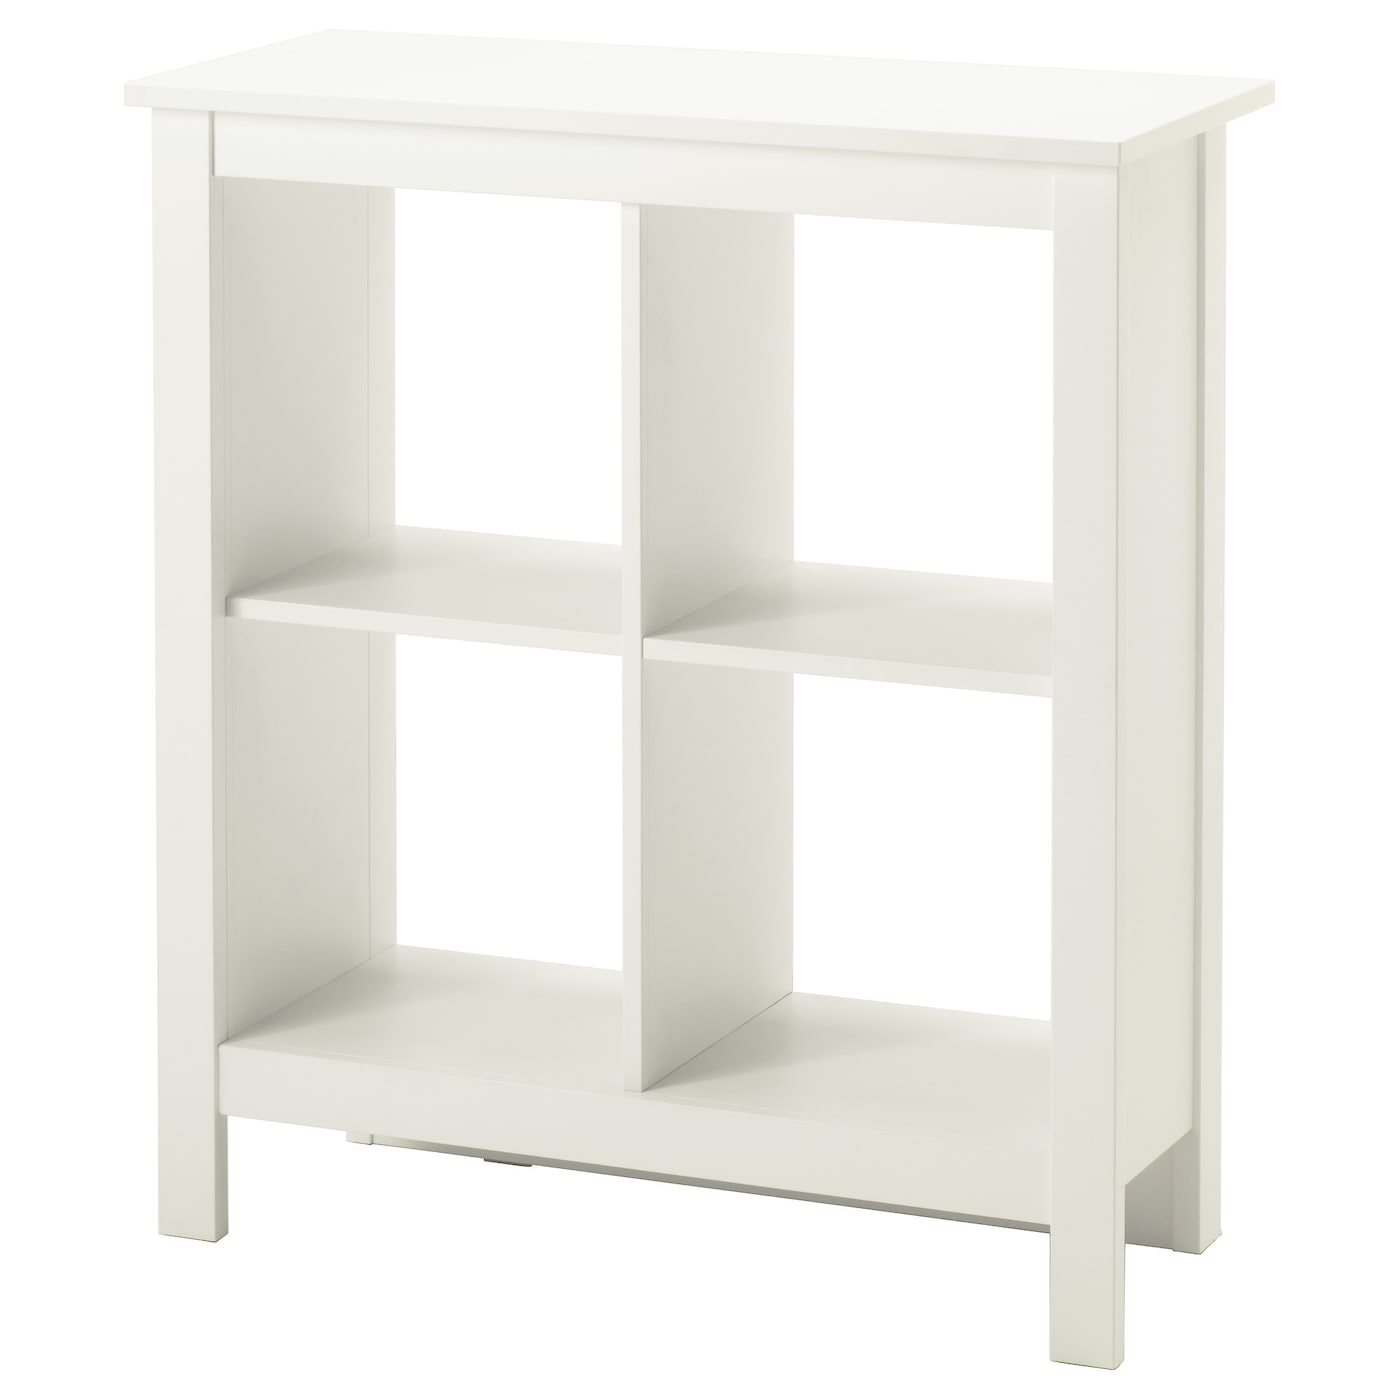 IKEA TOMN S shelving unit Easy to place anywhere in your home. Shelving Units   Shelving Systems   IKEA